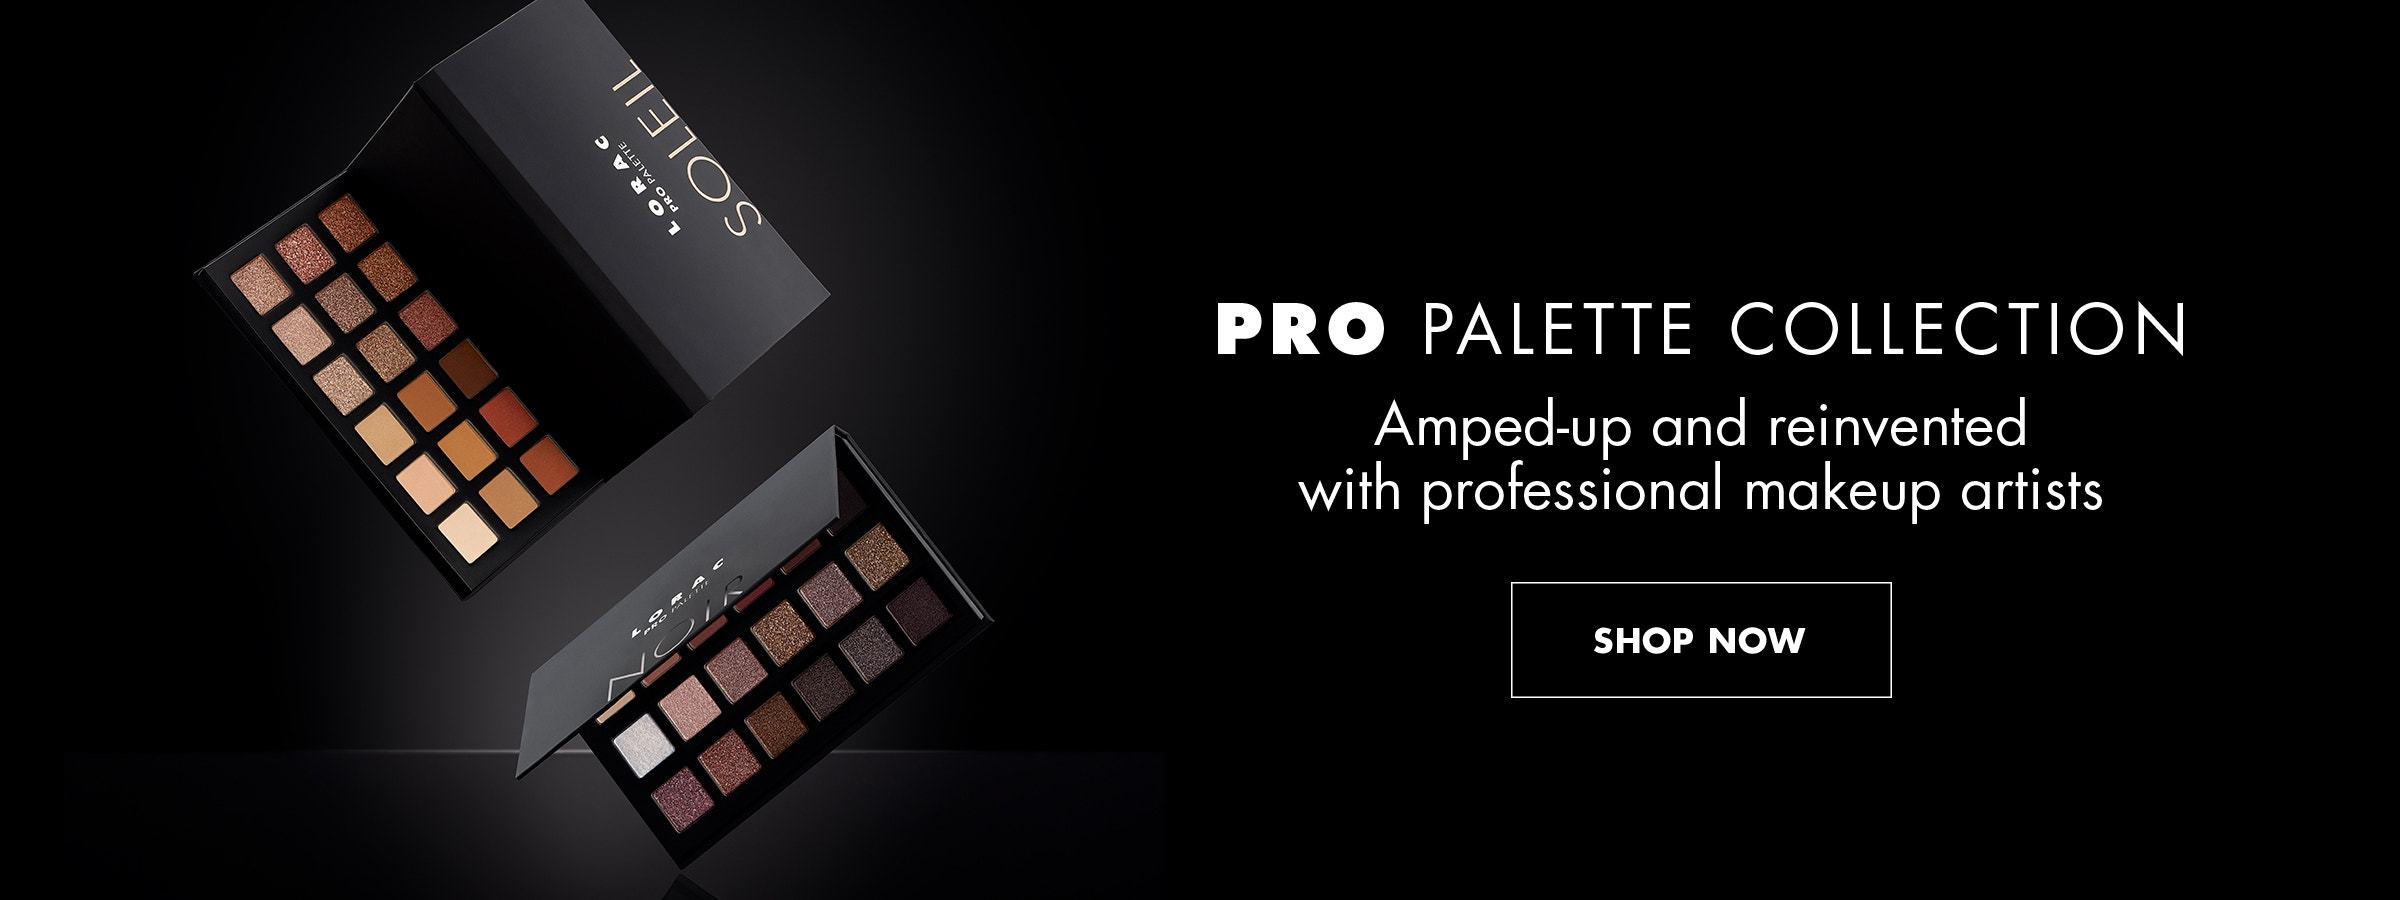 LORAC | PRO Palette Collection | Two PRO Palettes over a black background | SHOP NOW